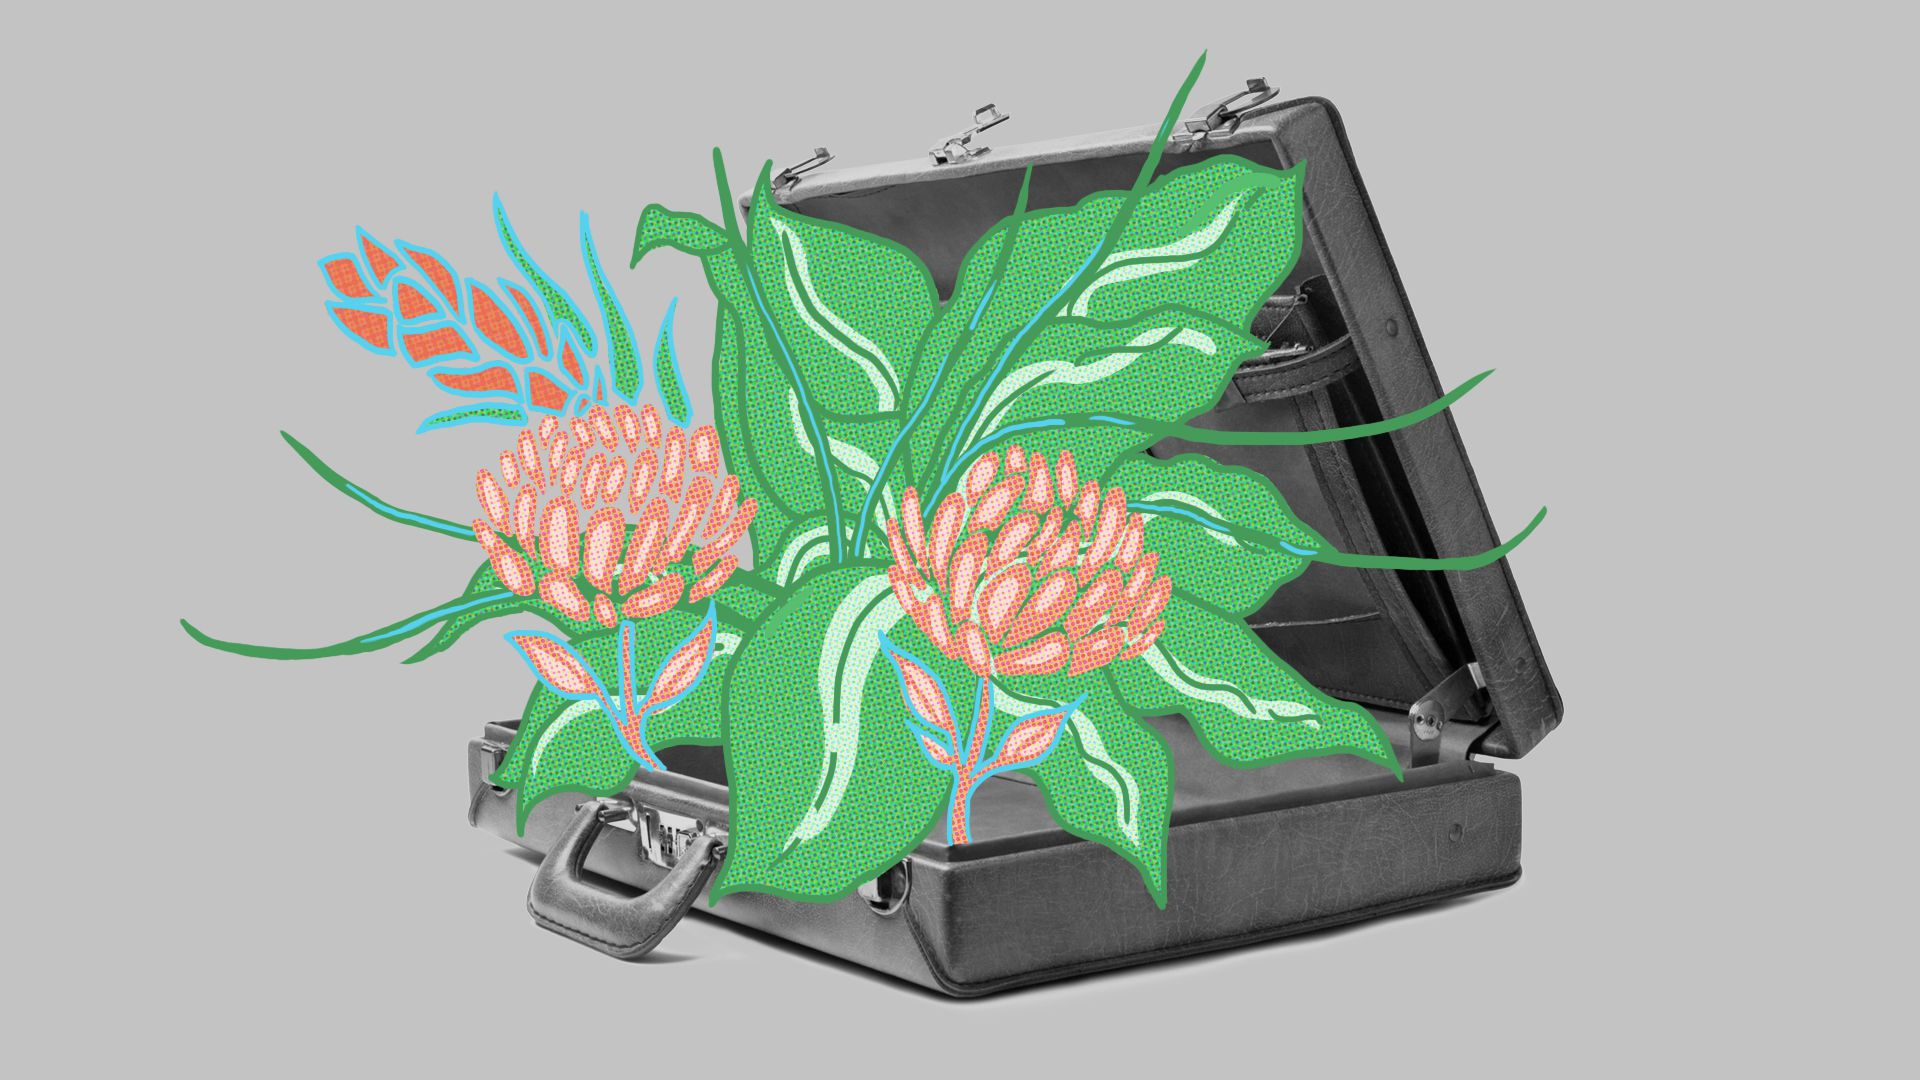 Illustration of an briefcase with plants growing out of it